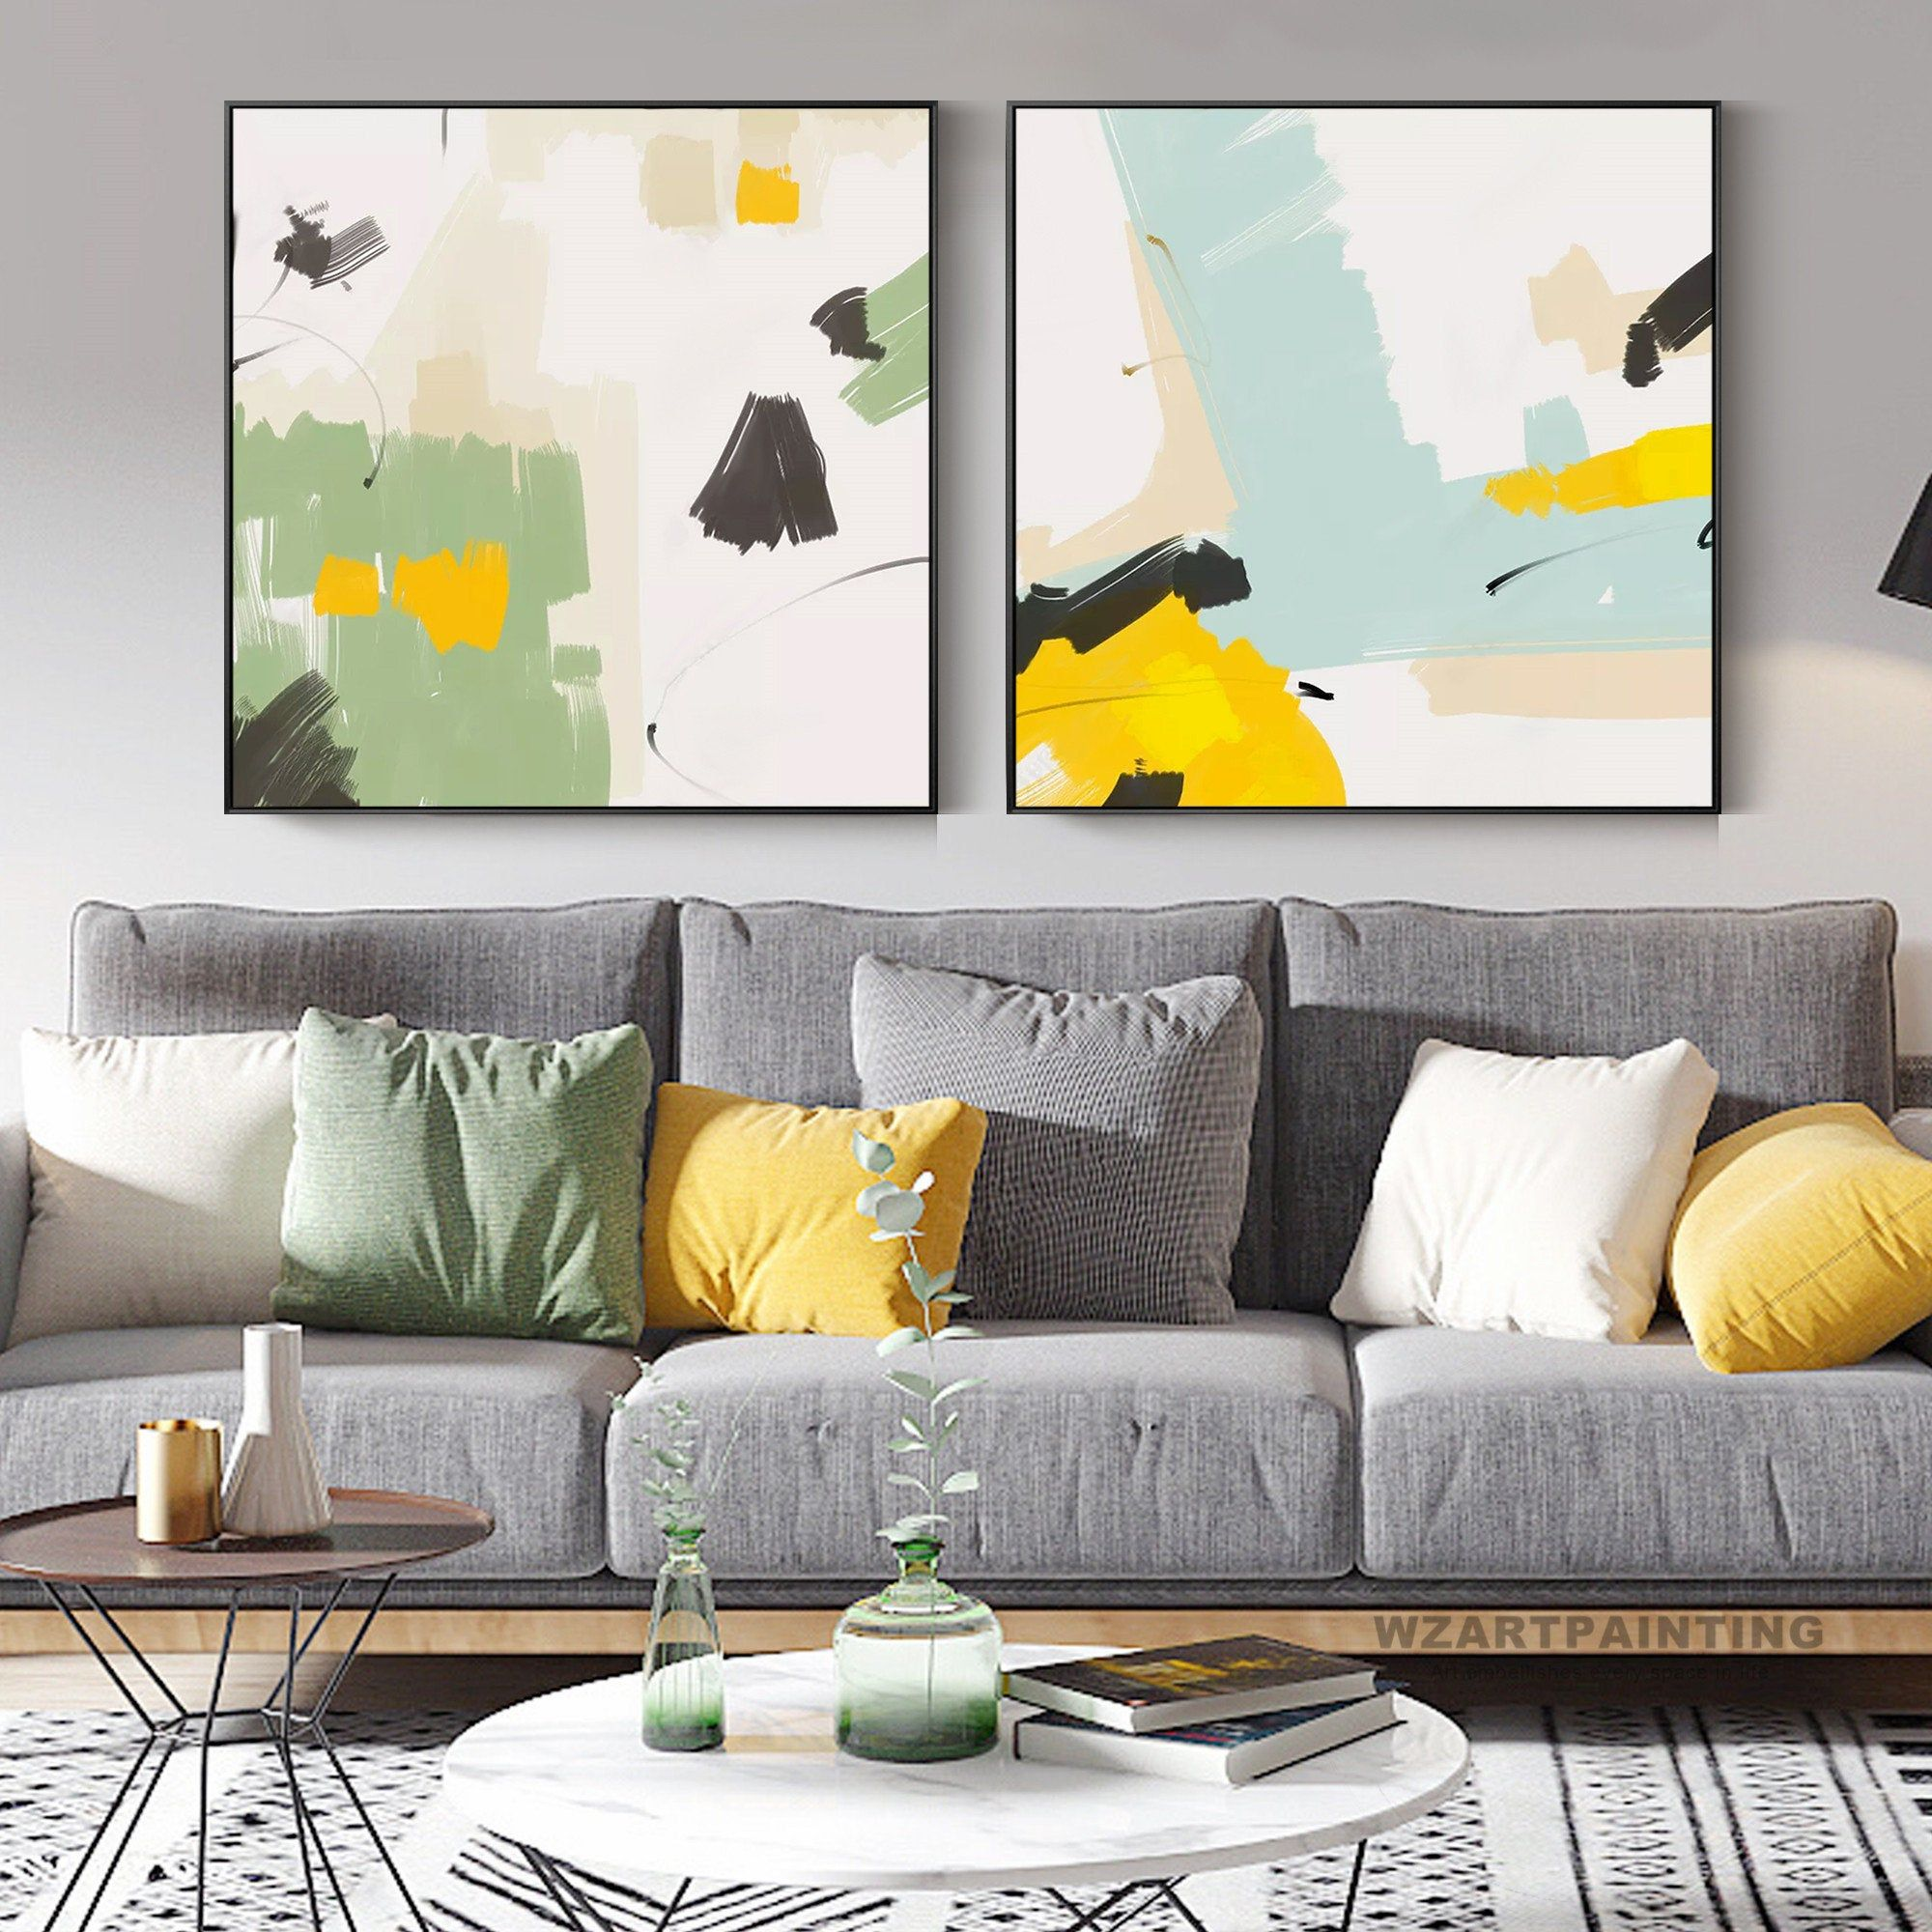 Framed Wall Art Set Of 2 Prints Abstract Green Blue Yellow Black White Print Painting On Canvas Large Wall Ar Framed Wall Art Sets Wall Art Sets Green Wall Art